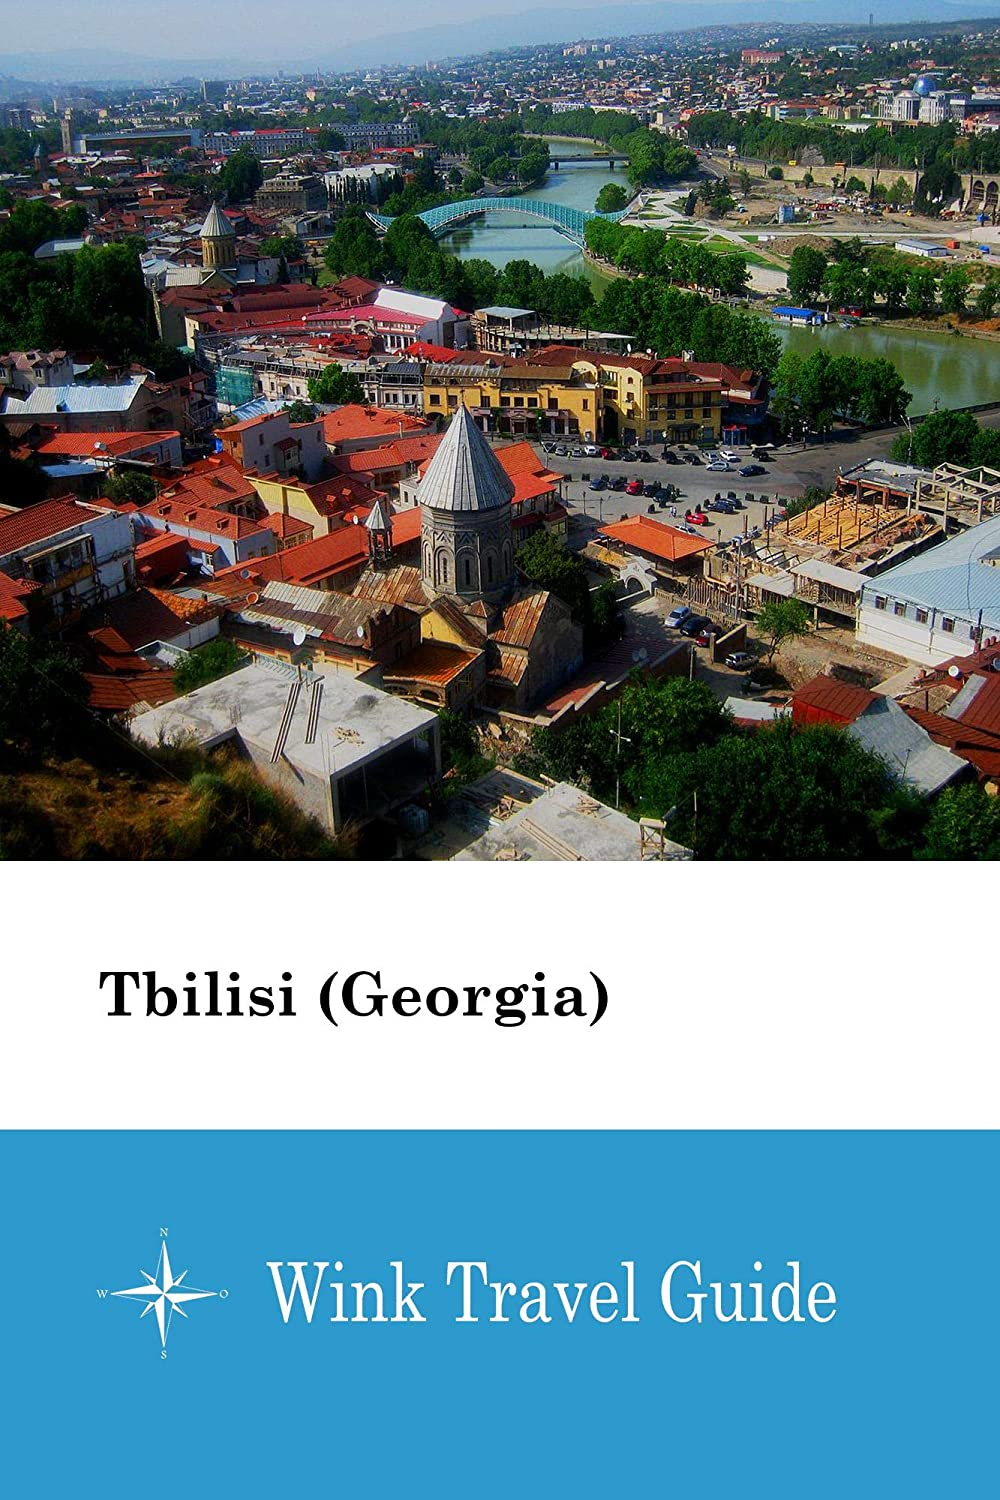 薬局移植スクラップブックTbilisi (Georgia) - Wink Travel Guide (English Edition)